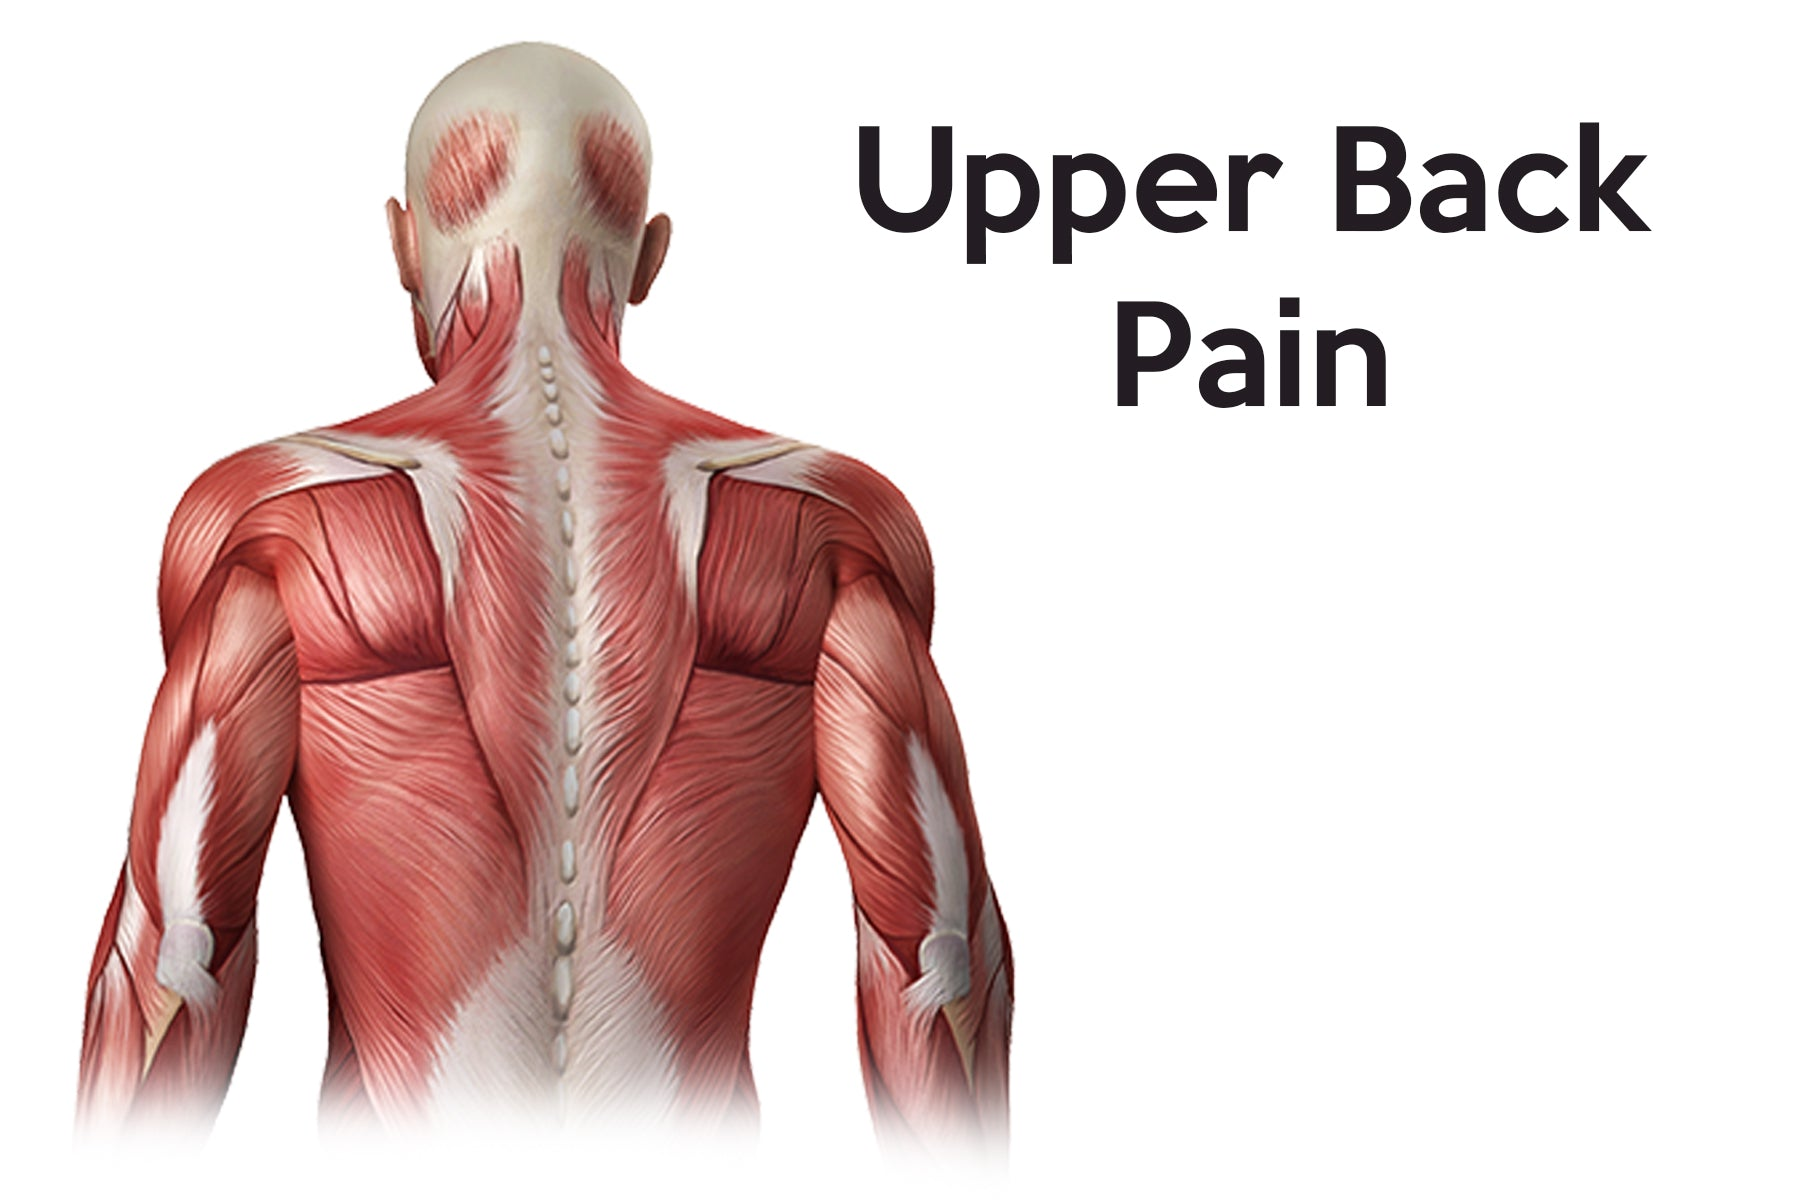 learn more about types of upper back pain and their causes